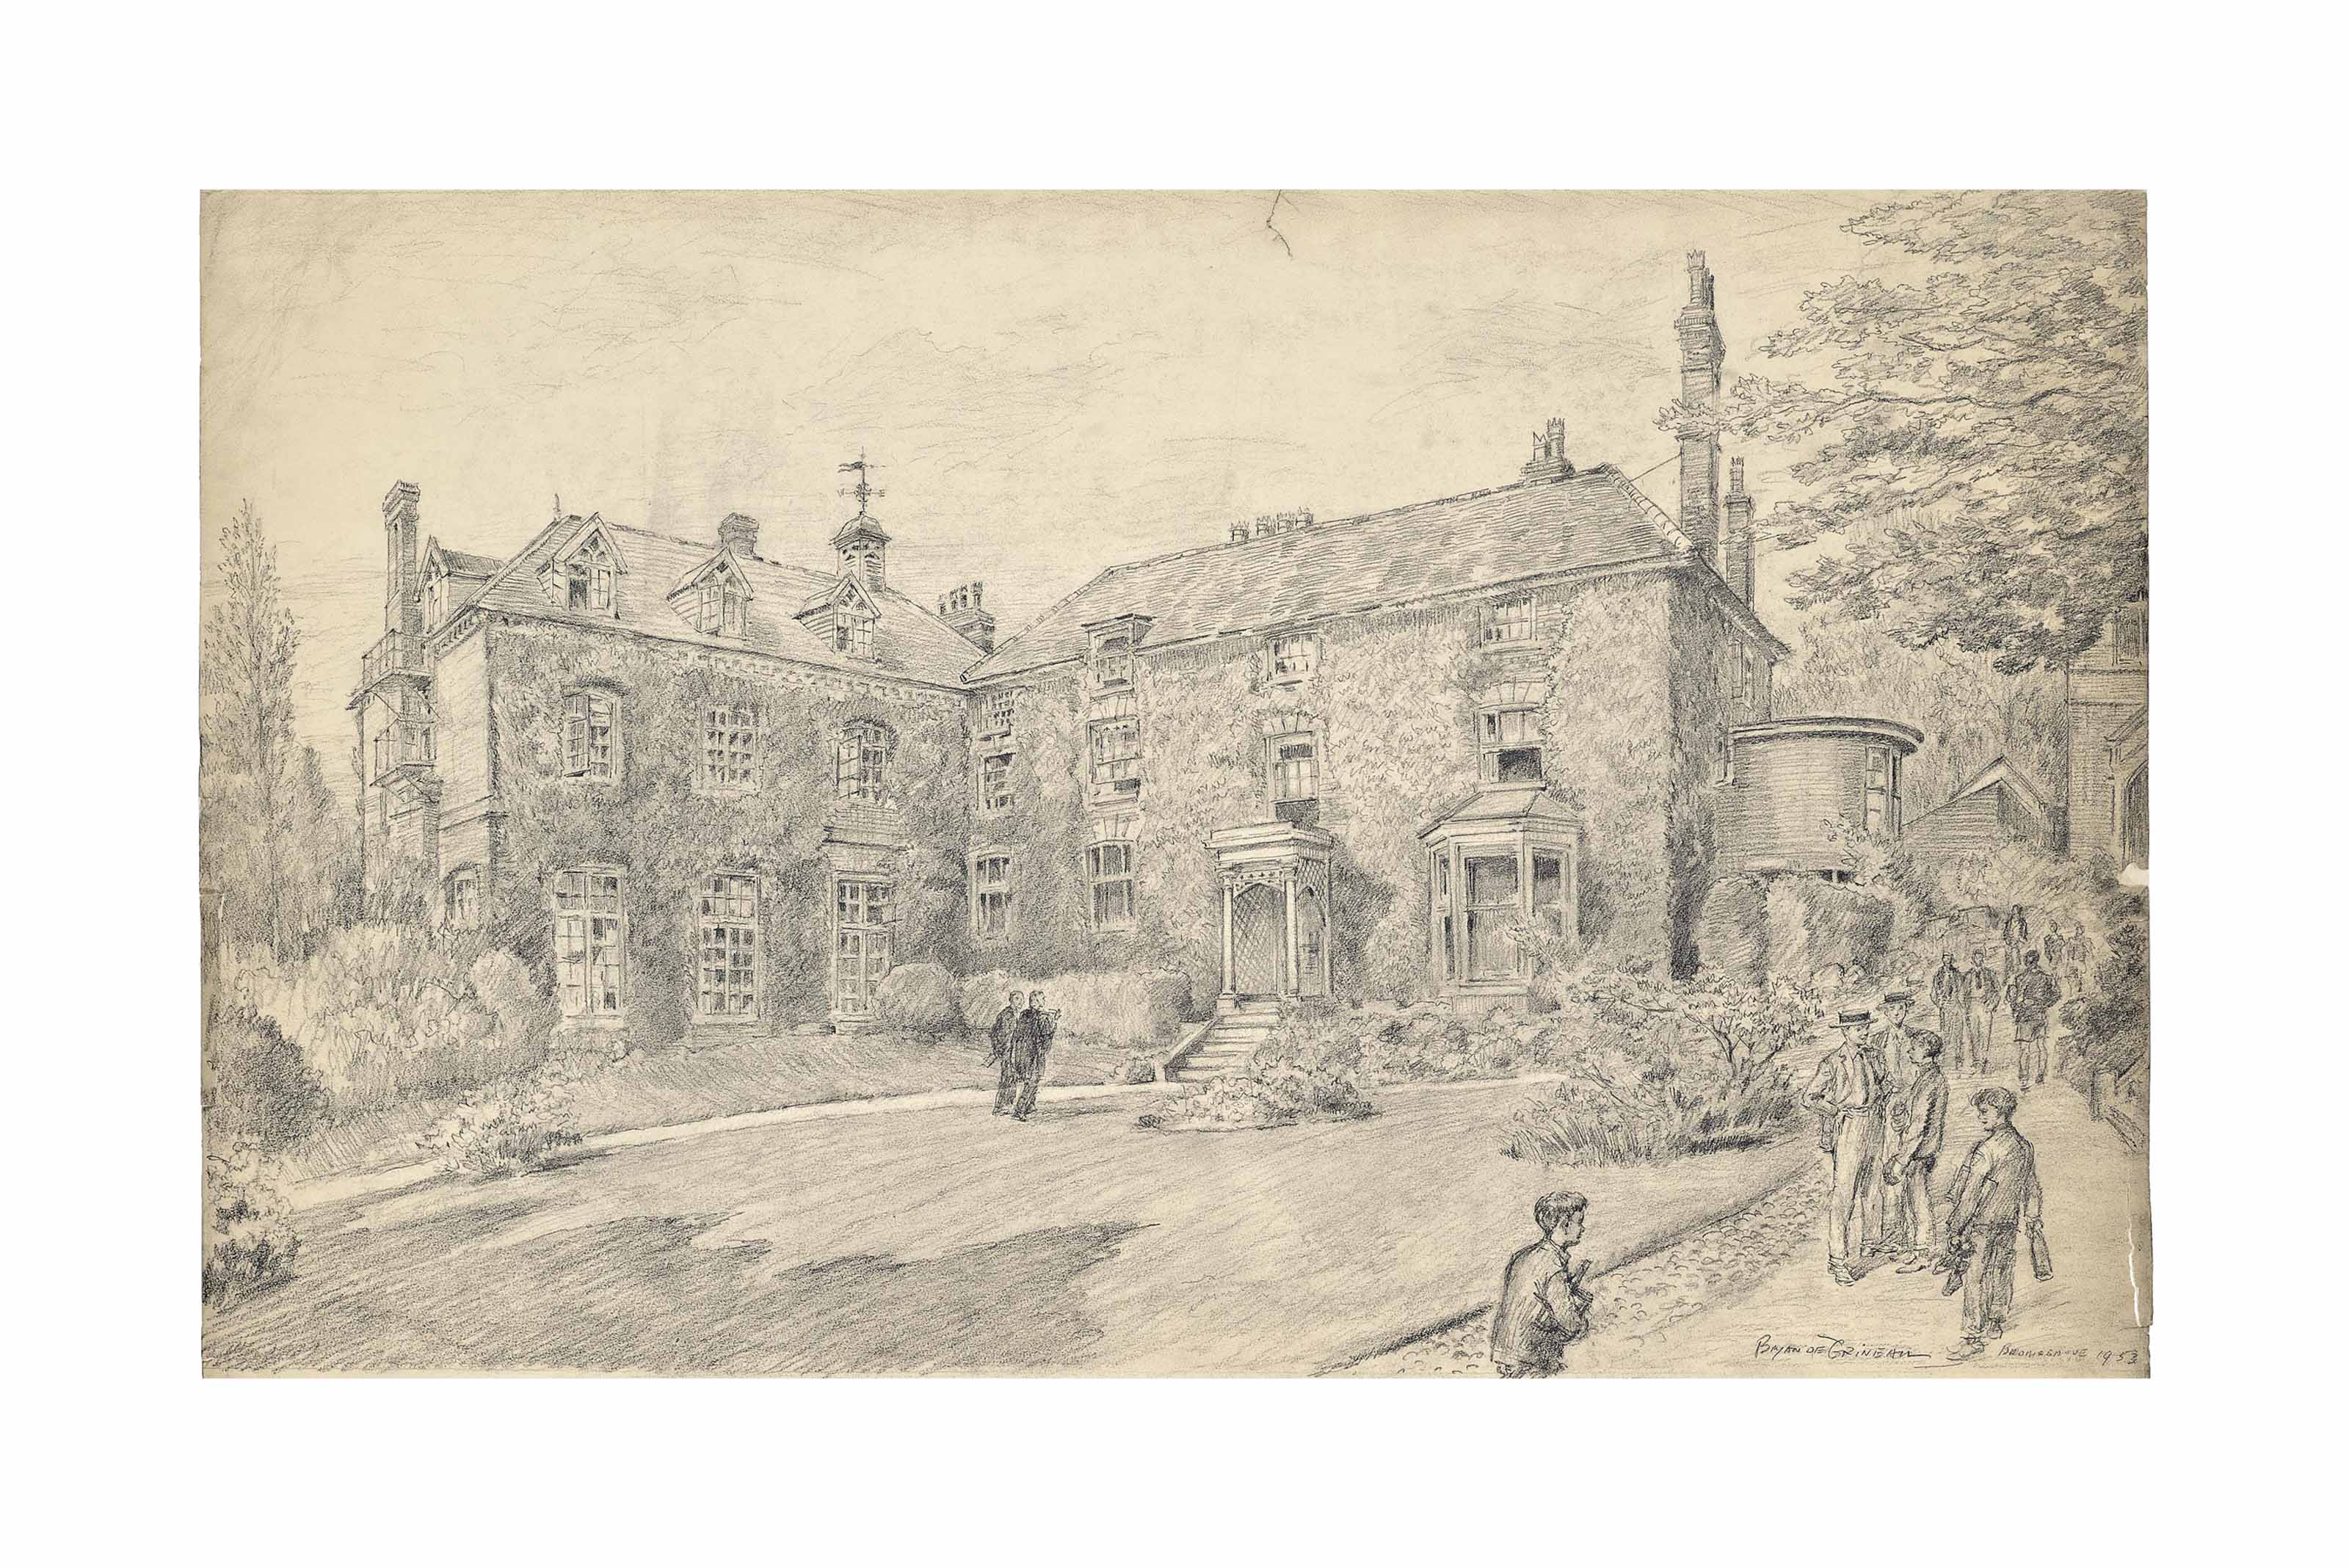 Bromsgrove School, Worcestershire: The Old School and Master's House: Now celebrating the quarter centenary of its re-organisation under H.R.H. Edward VI